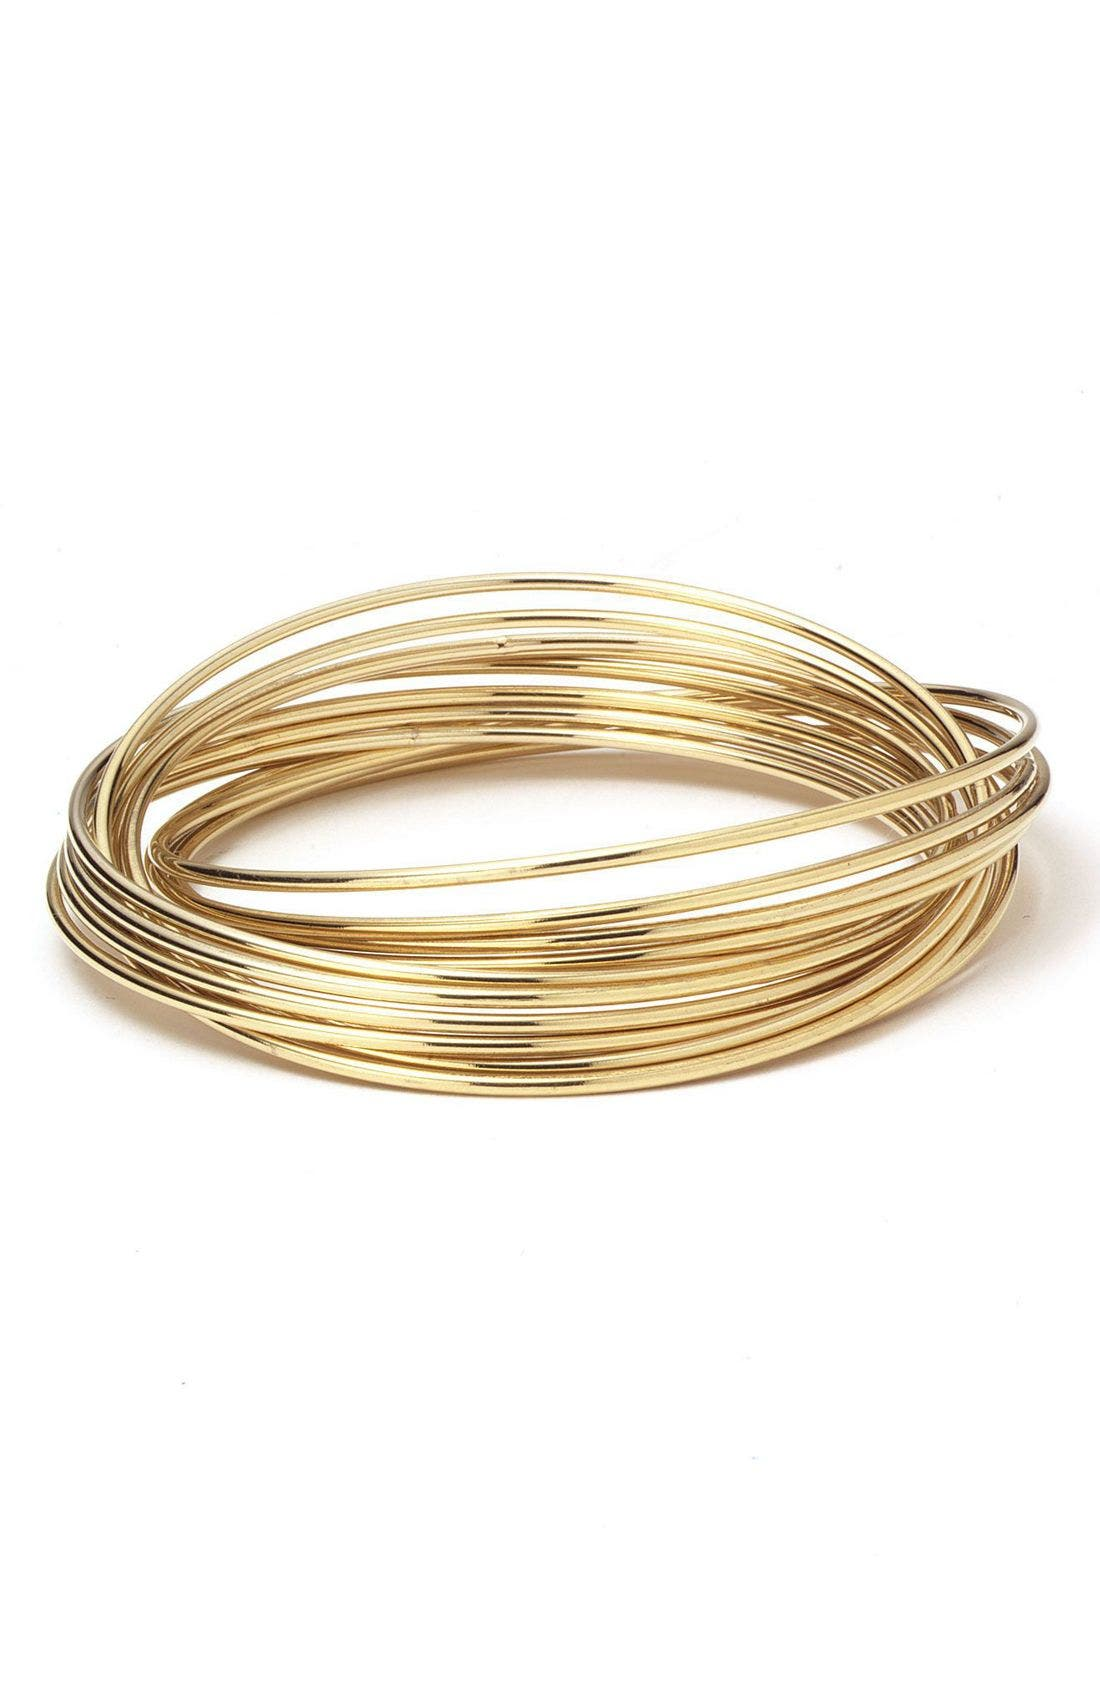 Alternate Image 1 Selected - Nordstrom Rolling Bangle Bracelets